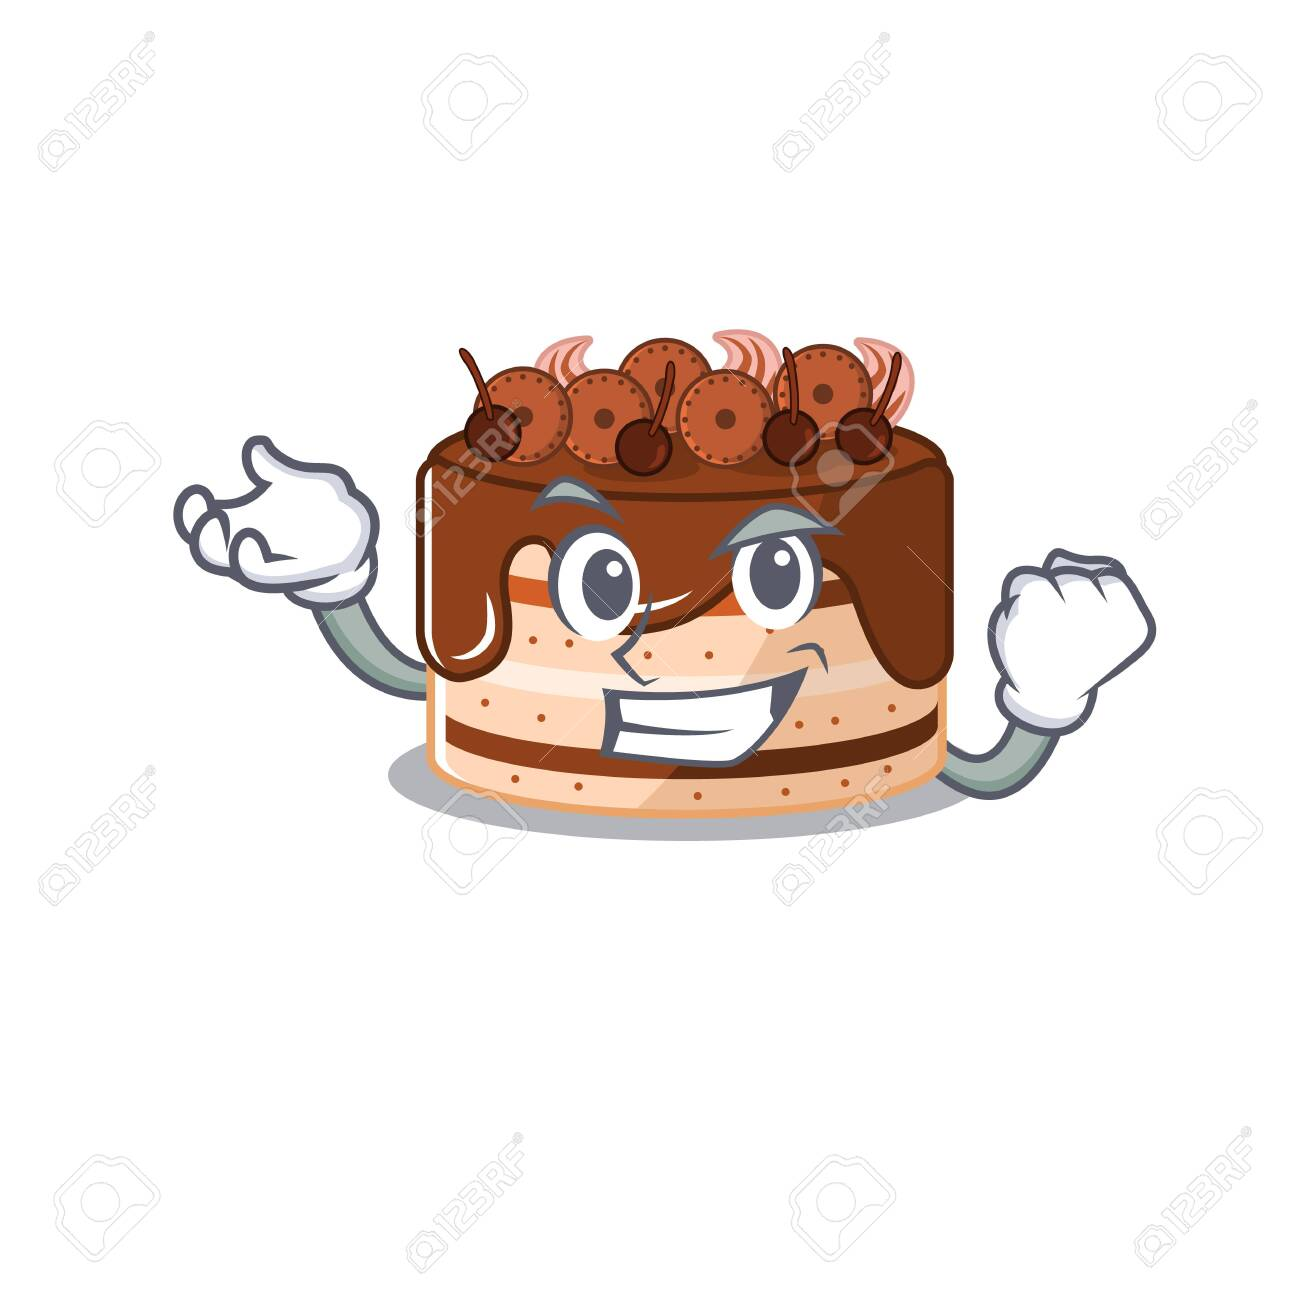 cool confident Successful chocolate cake cartoon character style - 140113310